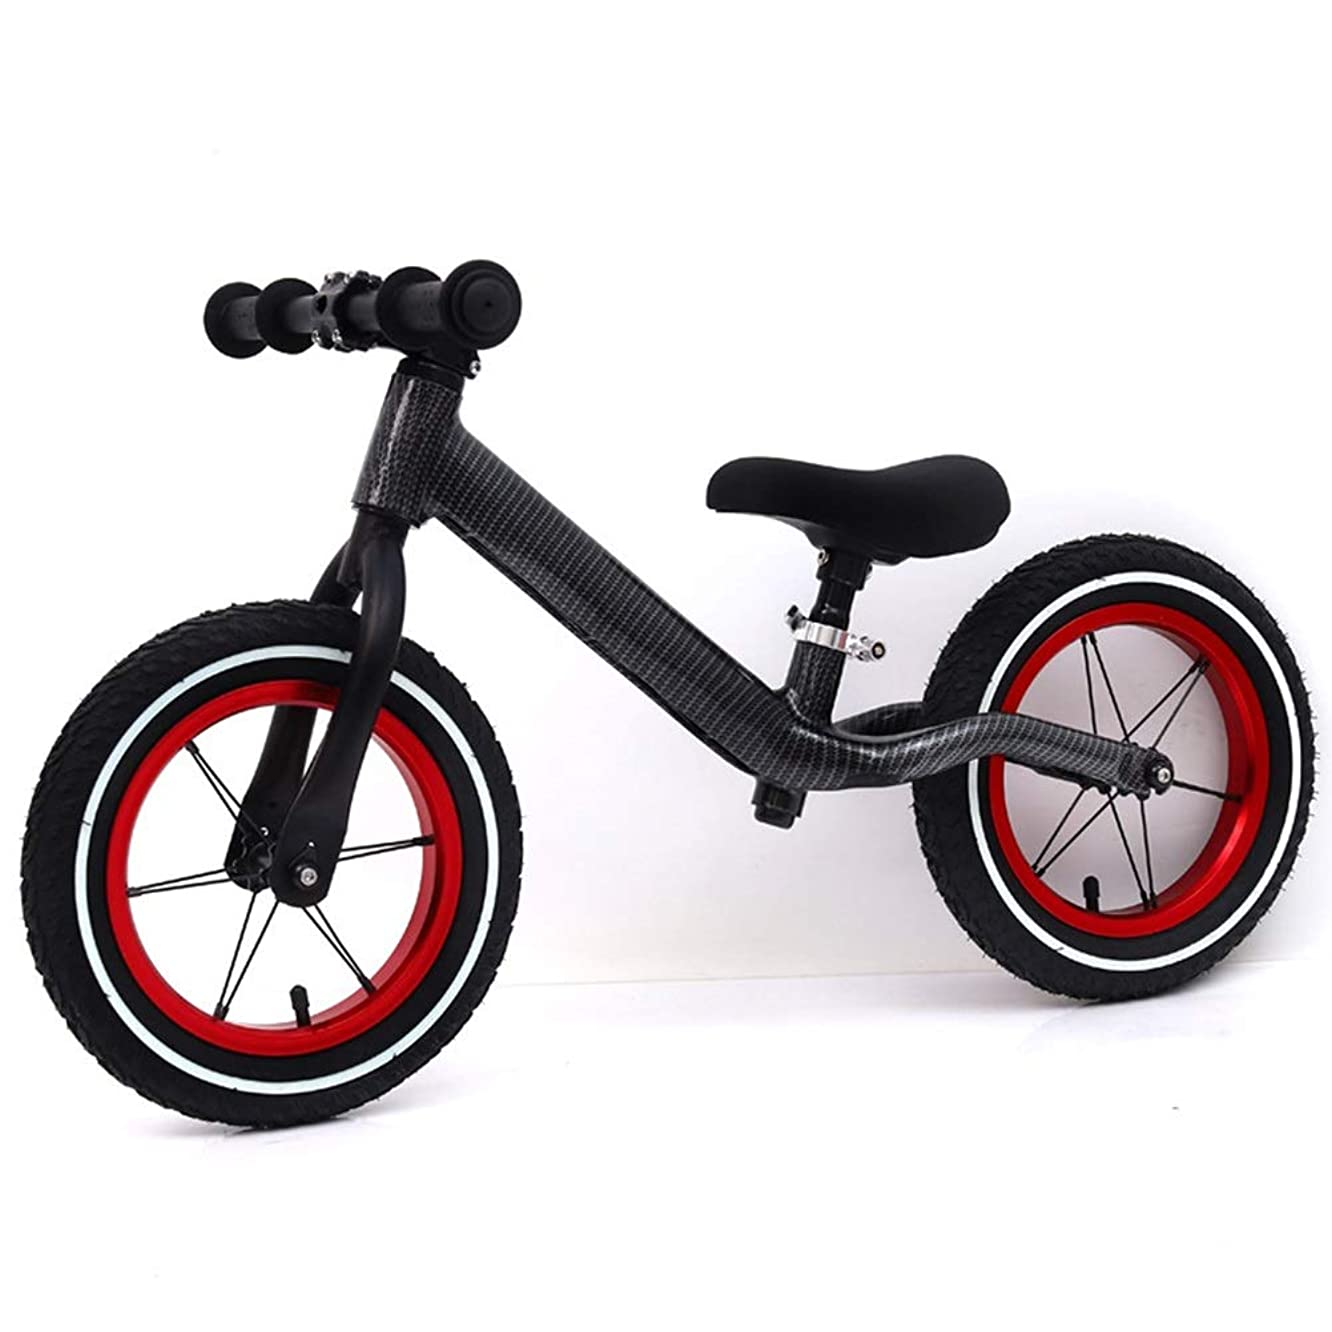 LZ-SNAIL Balance Bike Balance Bike Without Pedals with Adjustable Handlebar & Soft Seat, 2-6 Years Toddler Push Bike Indoor Outdoor Activities ( Color : Gray )